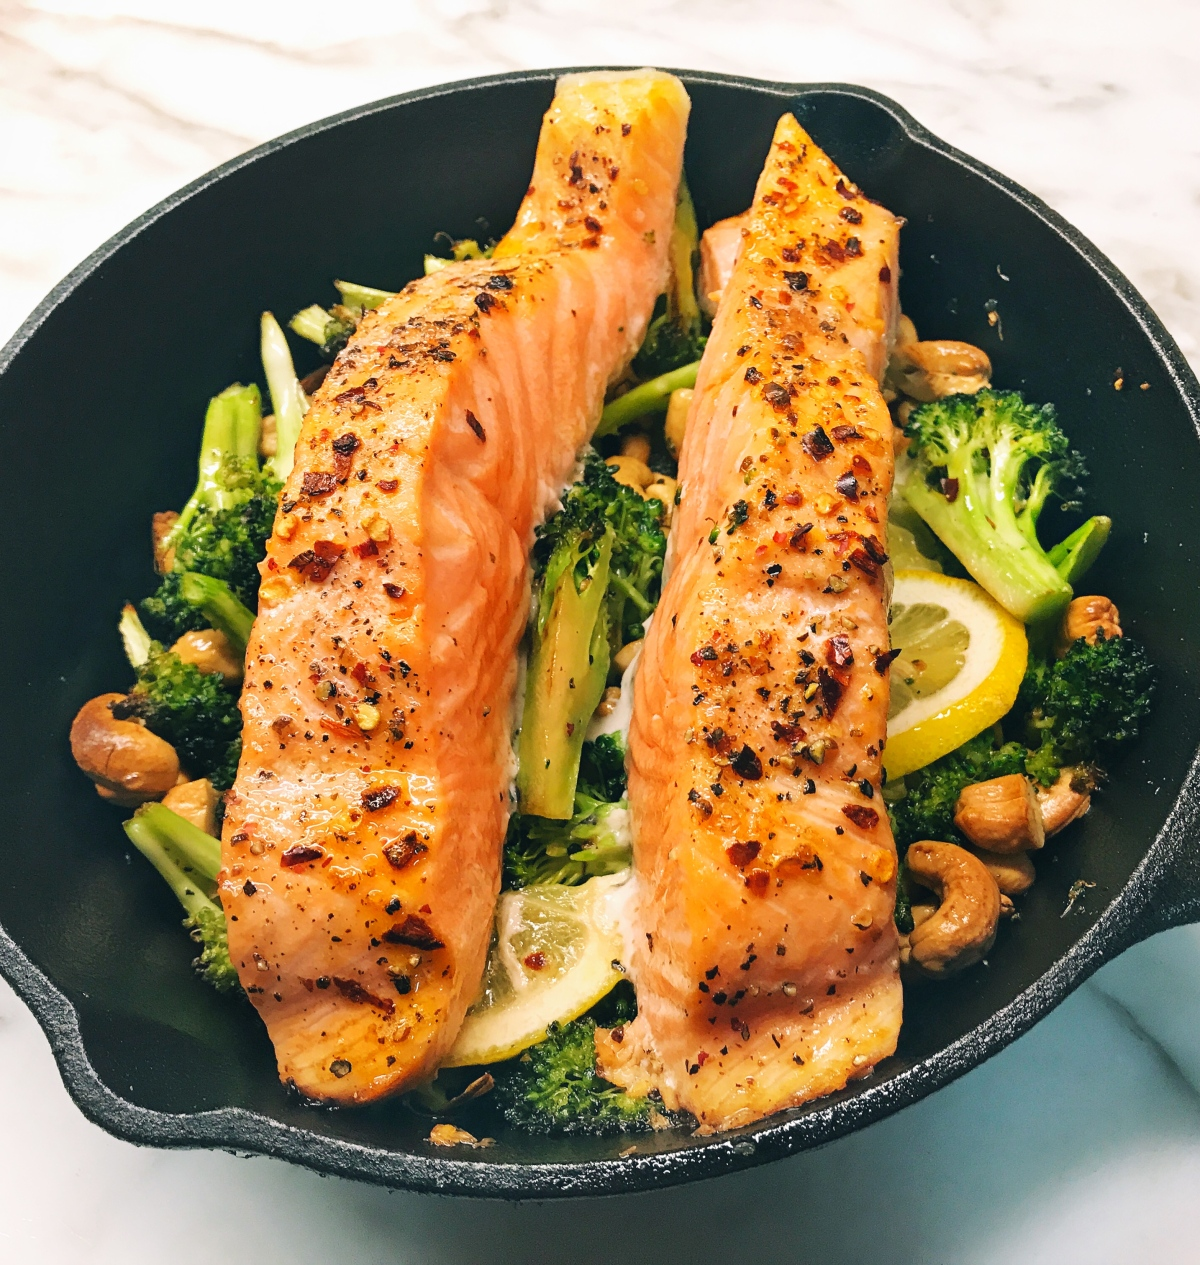 Coconut Salmon Skillet with Broccoli and Cashews